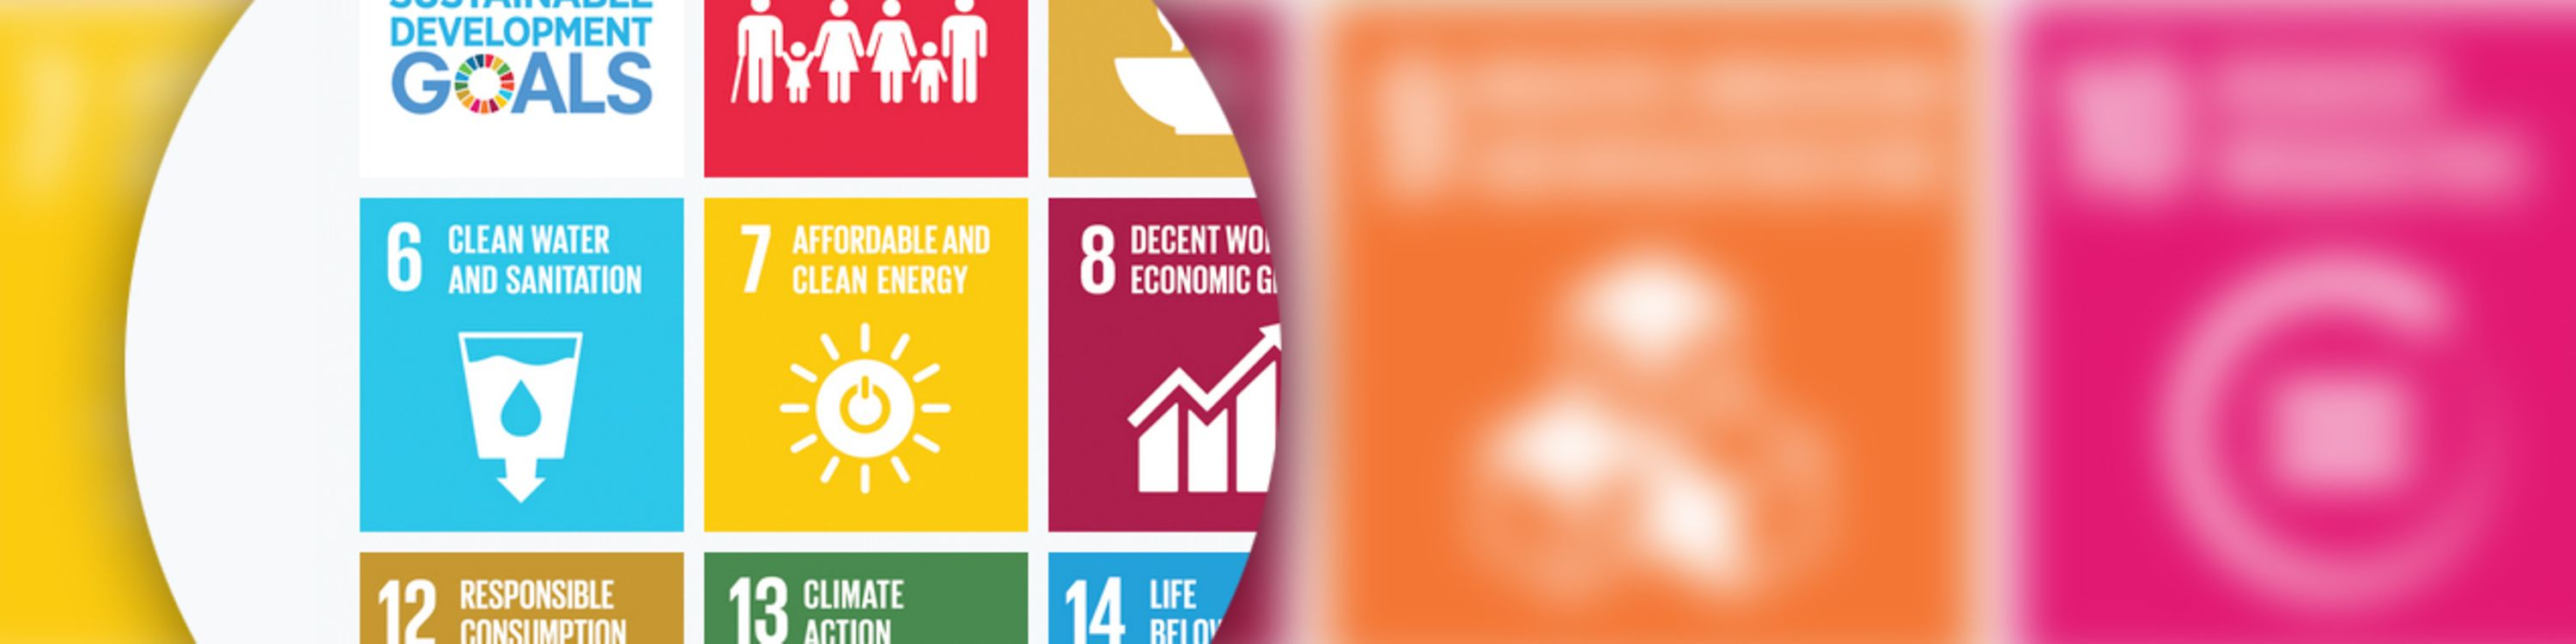 A graphic about sustainable development